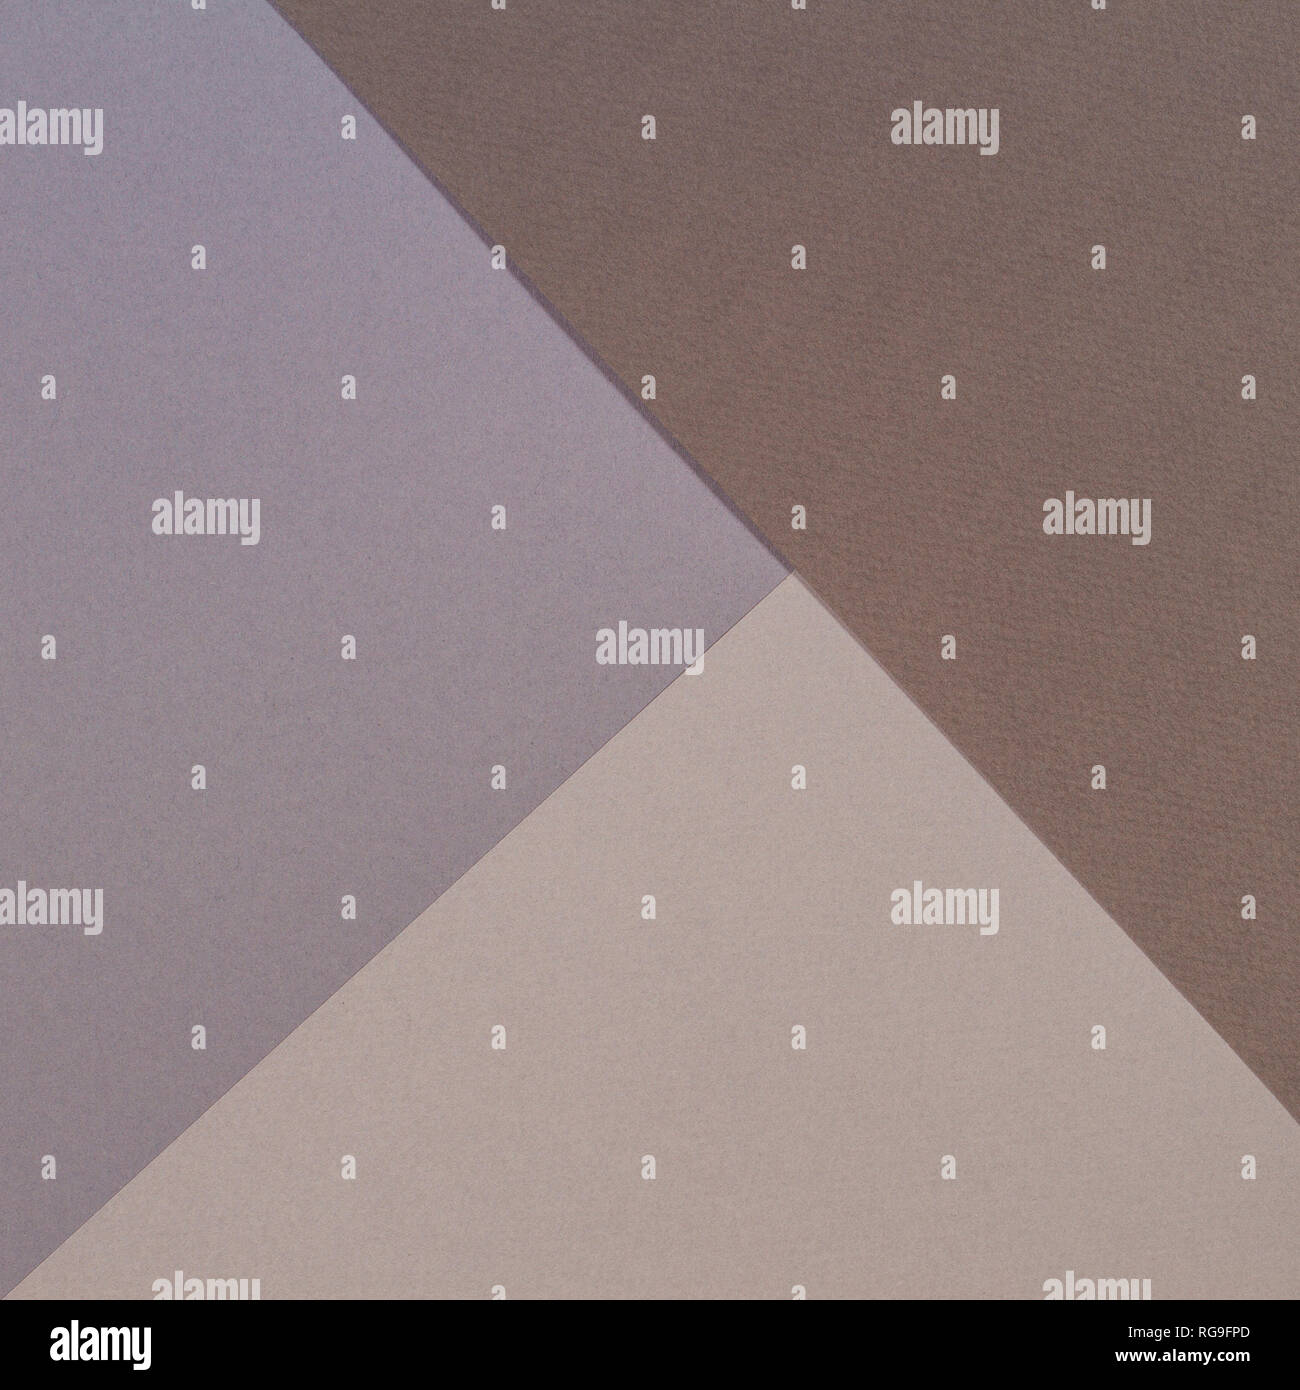 Color papers geometry composition background with gray beige and brown tones - Stock Image